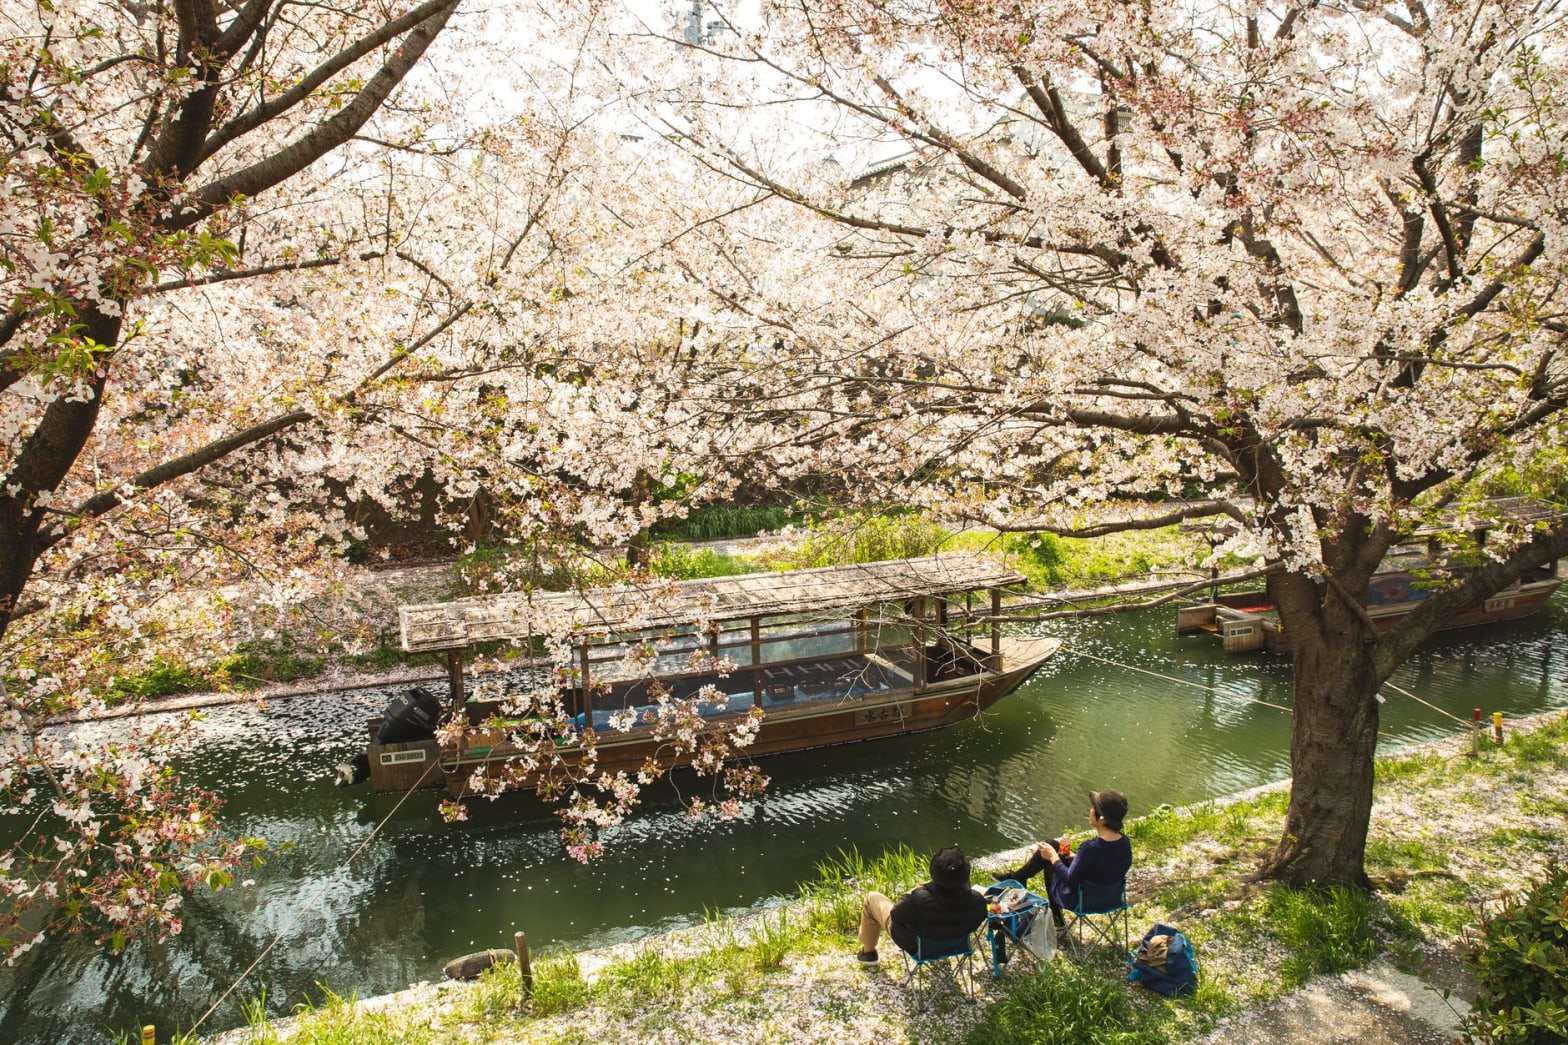 couple chilling under blooming sakura trees near river channel